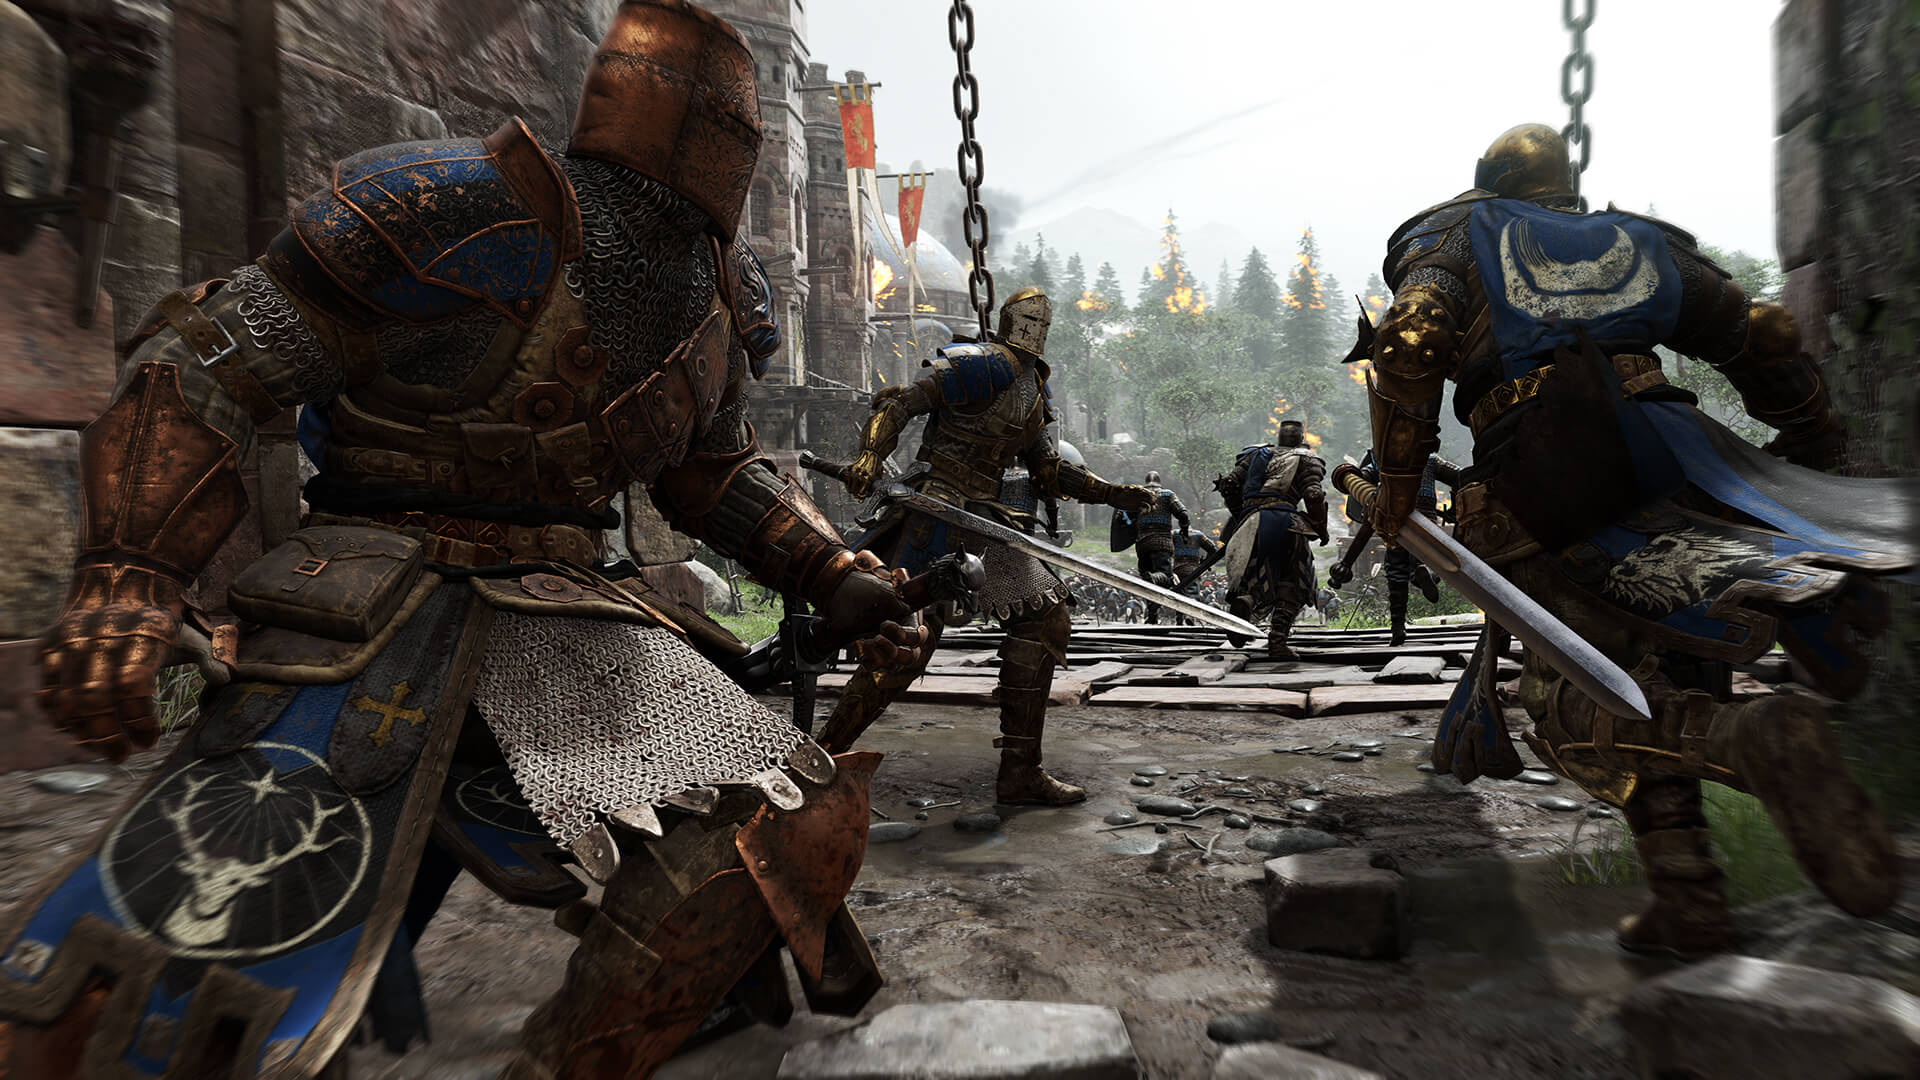 Blue knights For Honor